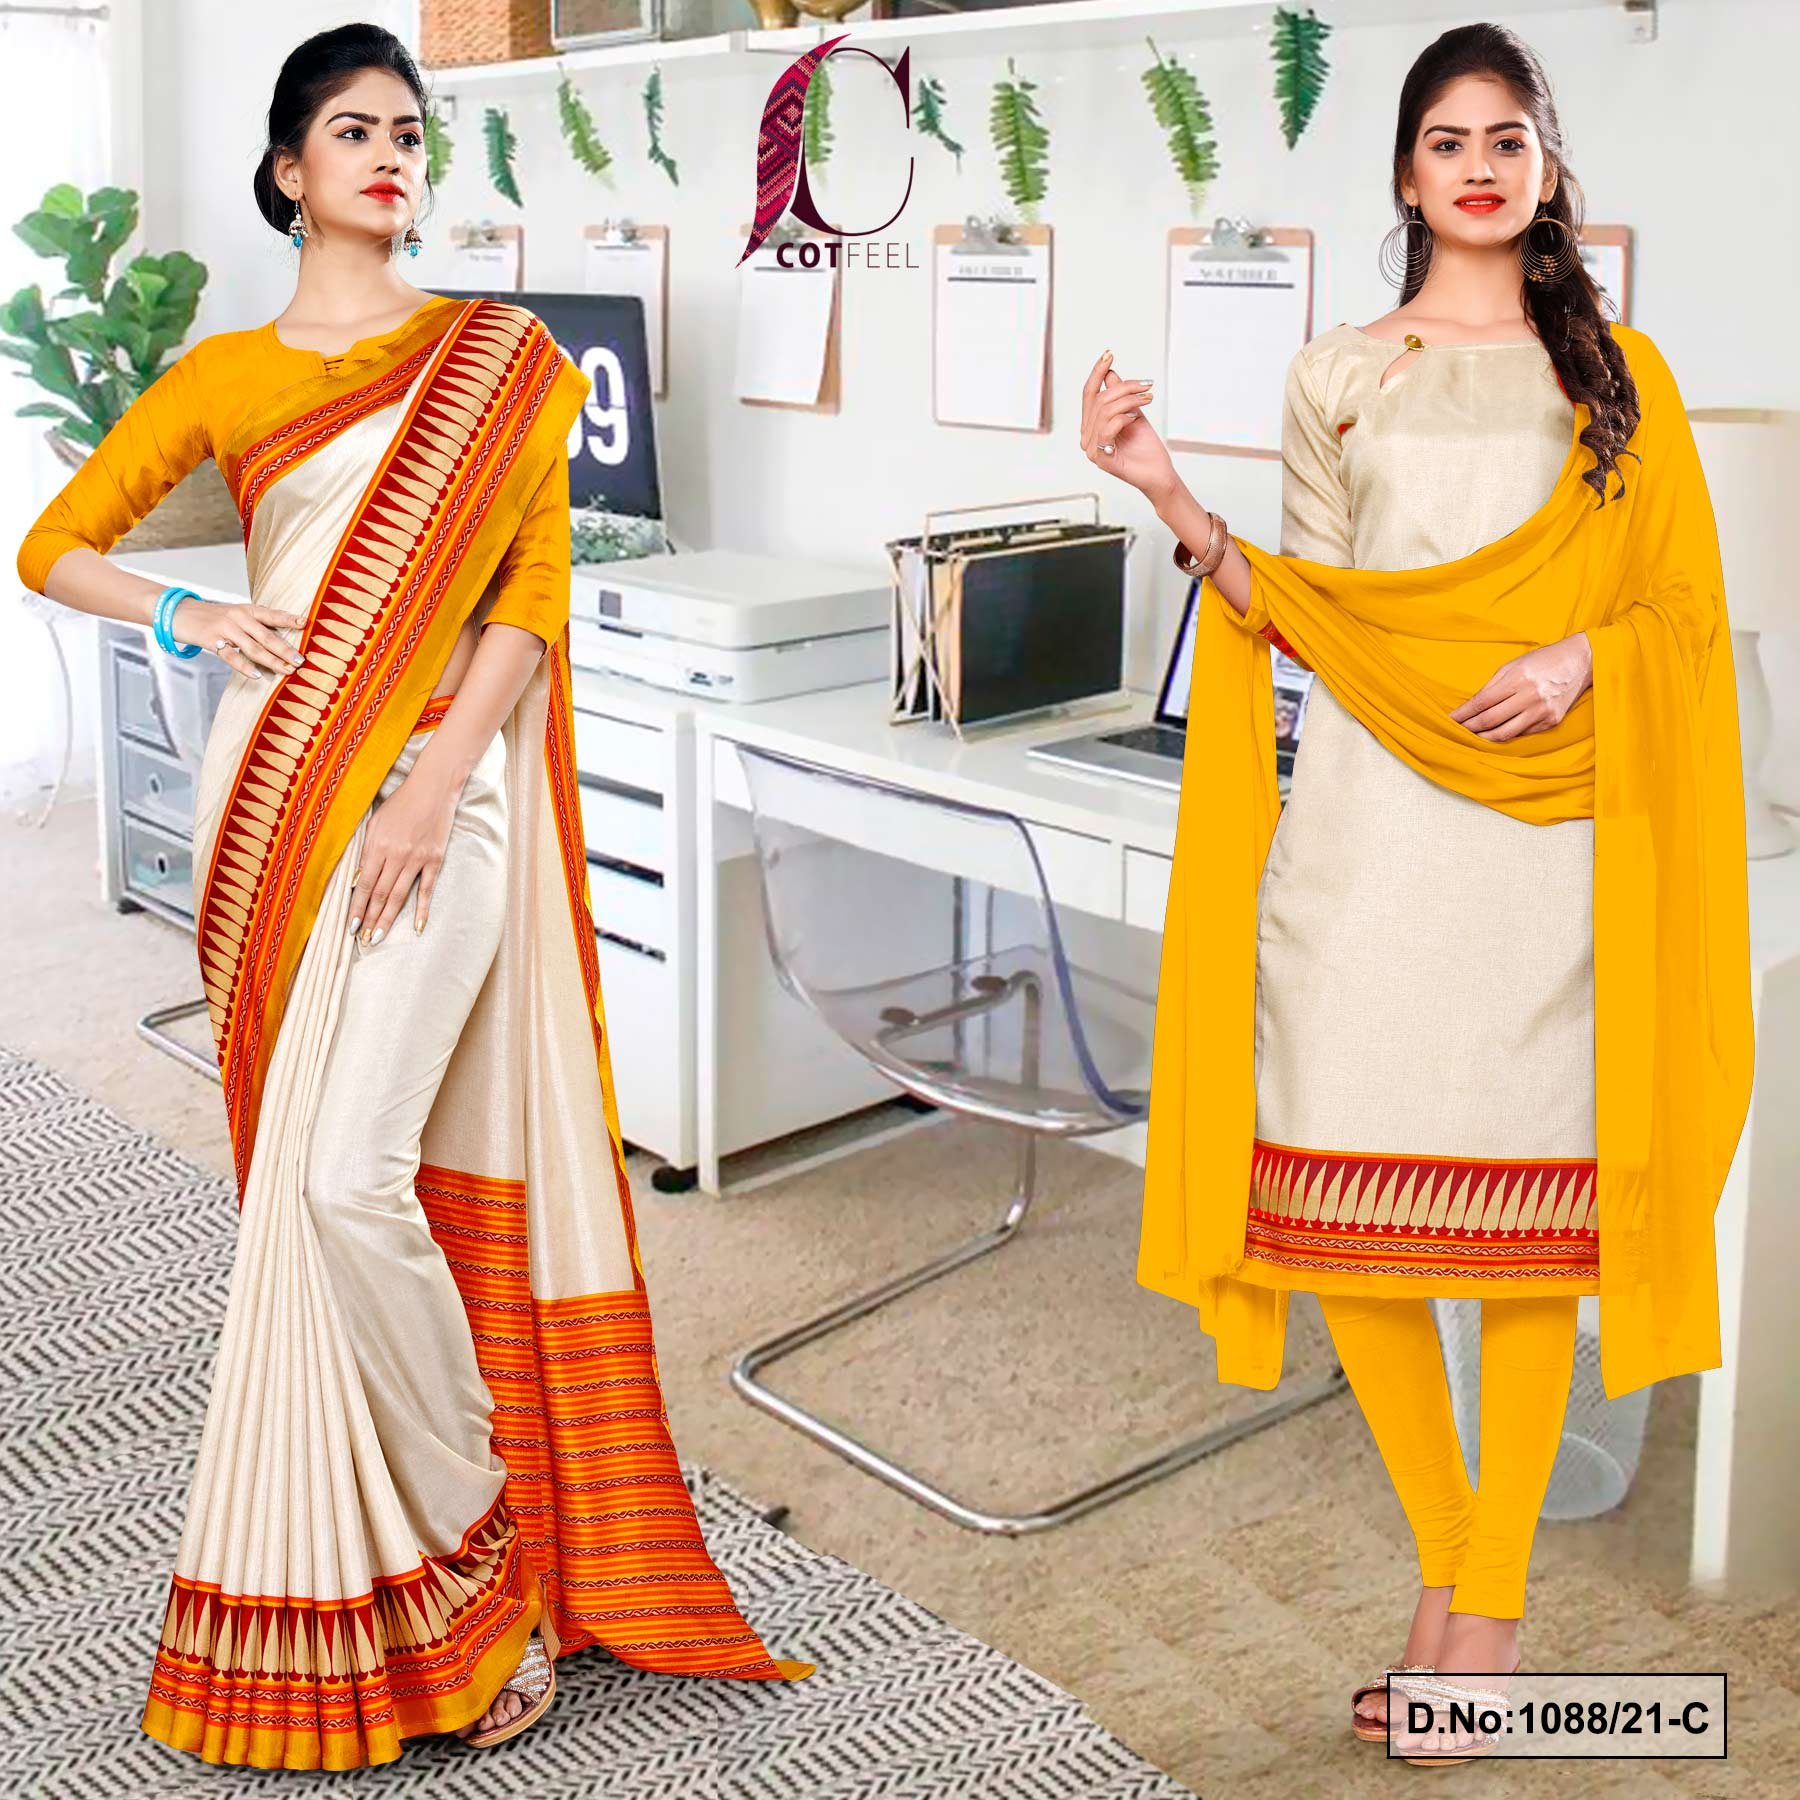 Cream Yellow Gold Plain Gala Border Polycotton Cotfeel Saree Salwar Combo for School Uniform Sarees 1088